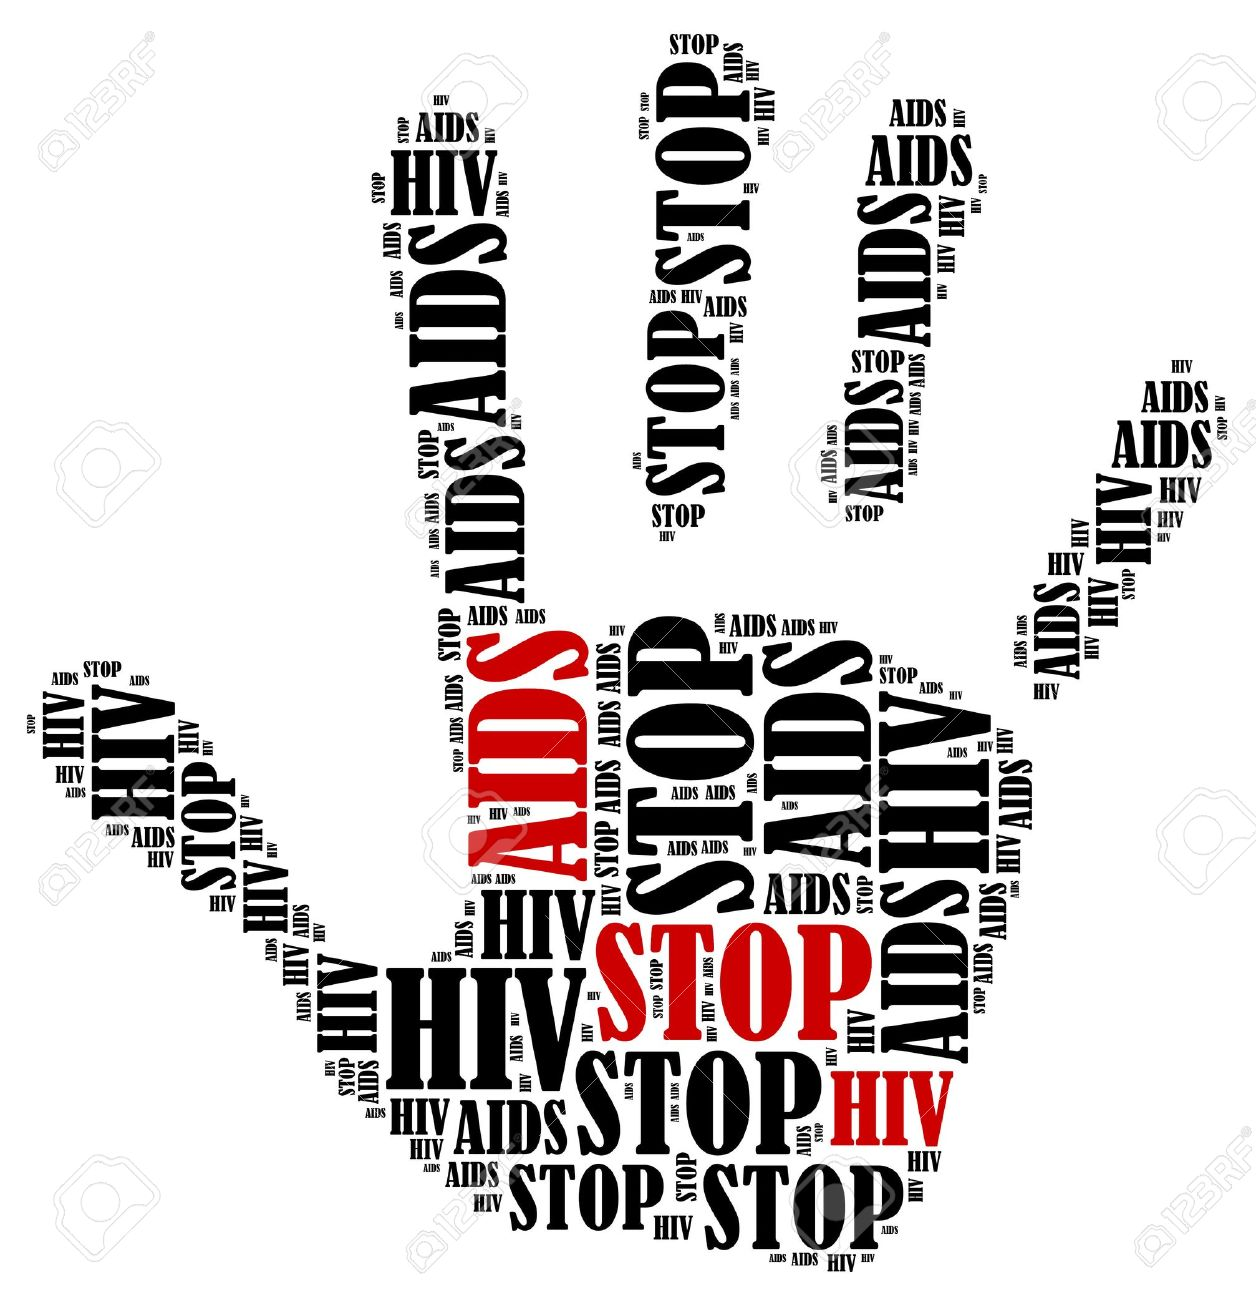 Risk Of Hiv And Aids High Among Teens